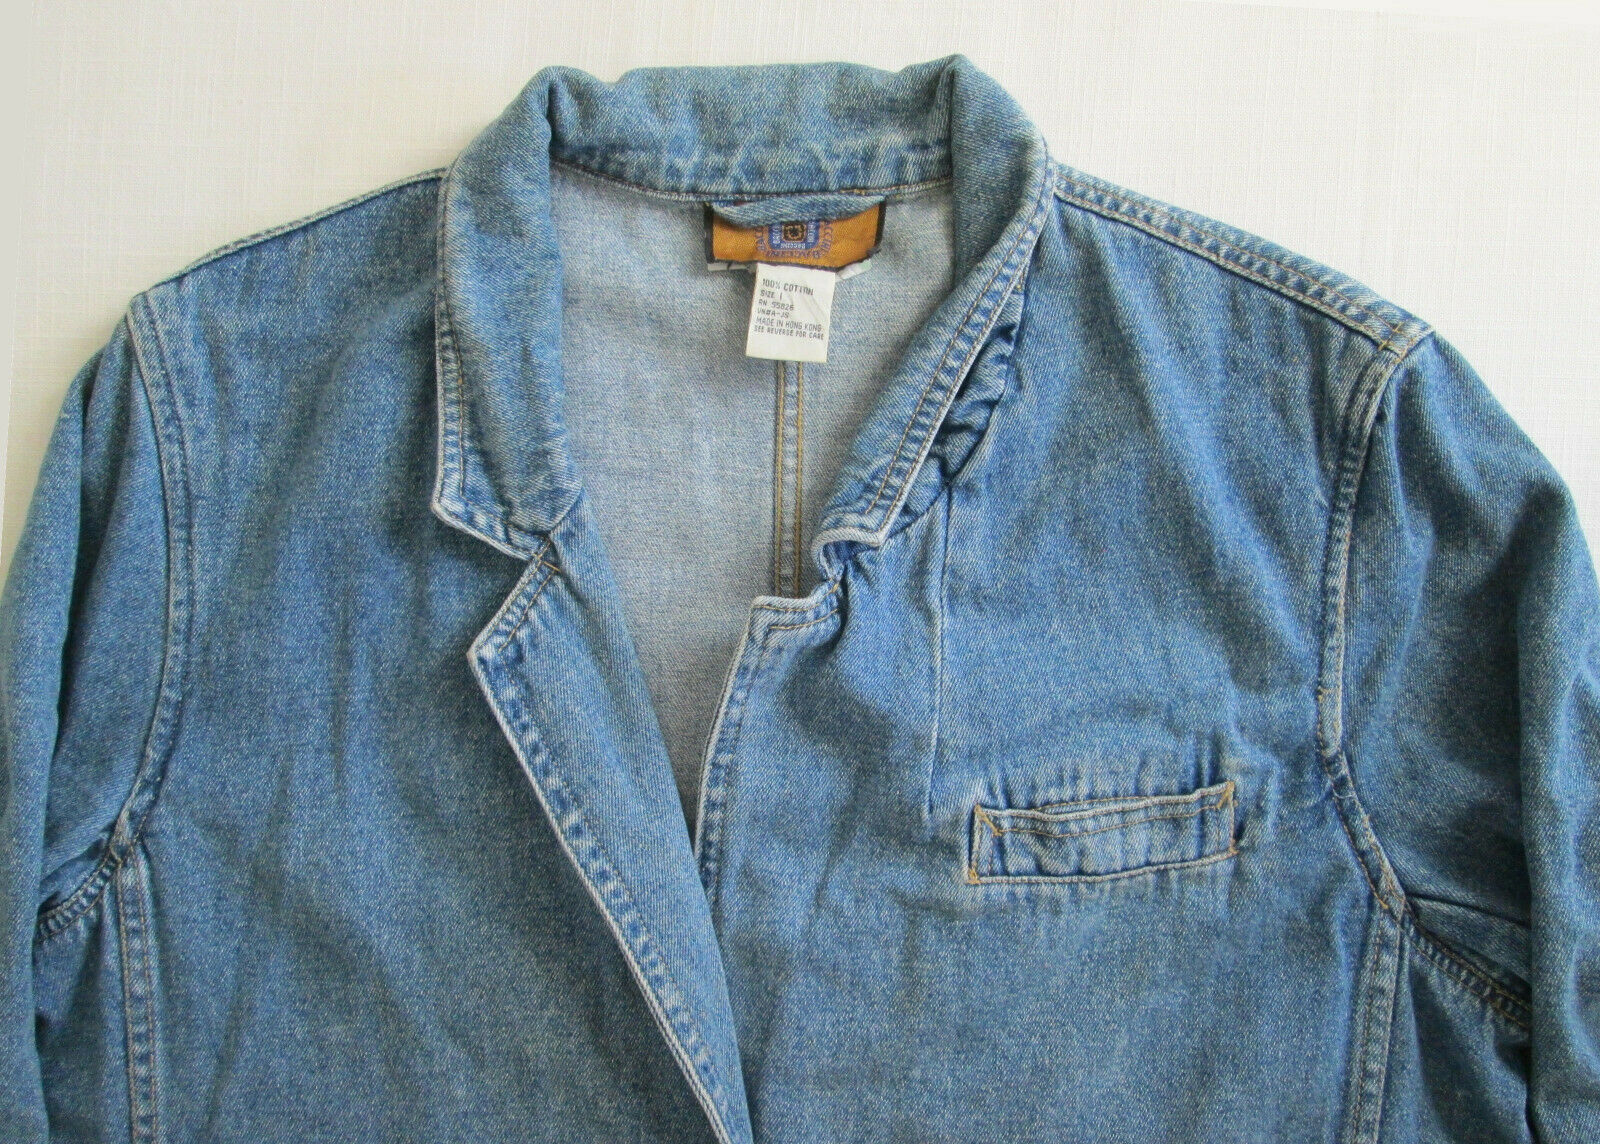 Baccini Womens Blue Denim Jacket Size L 100% Cotton Used Washed and Faded vtg